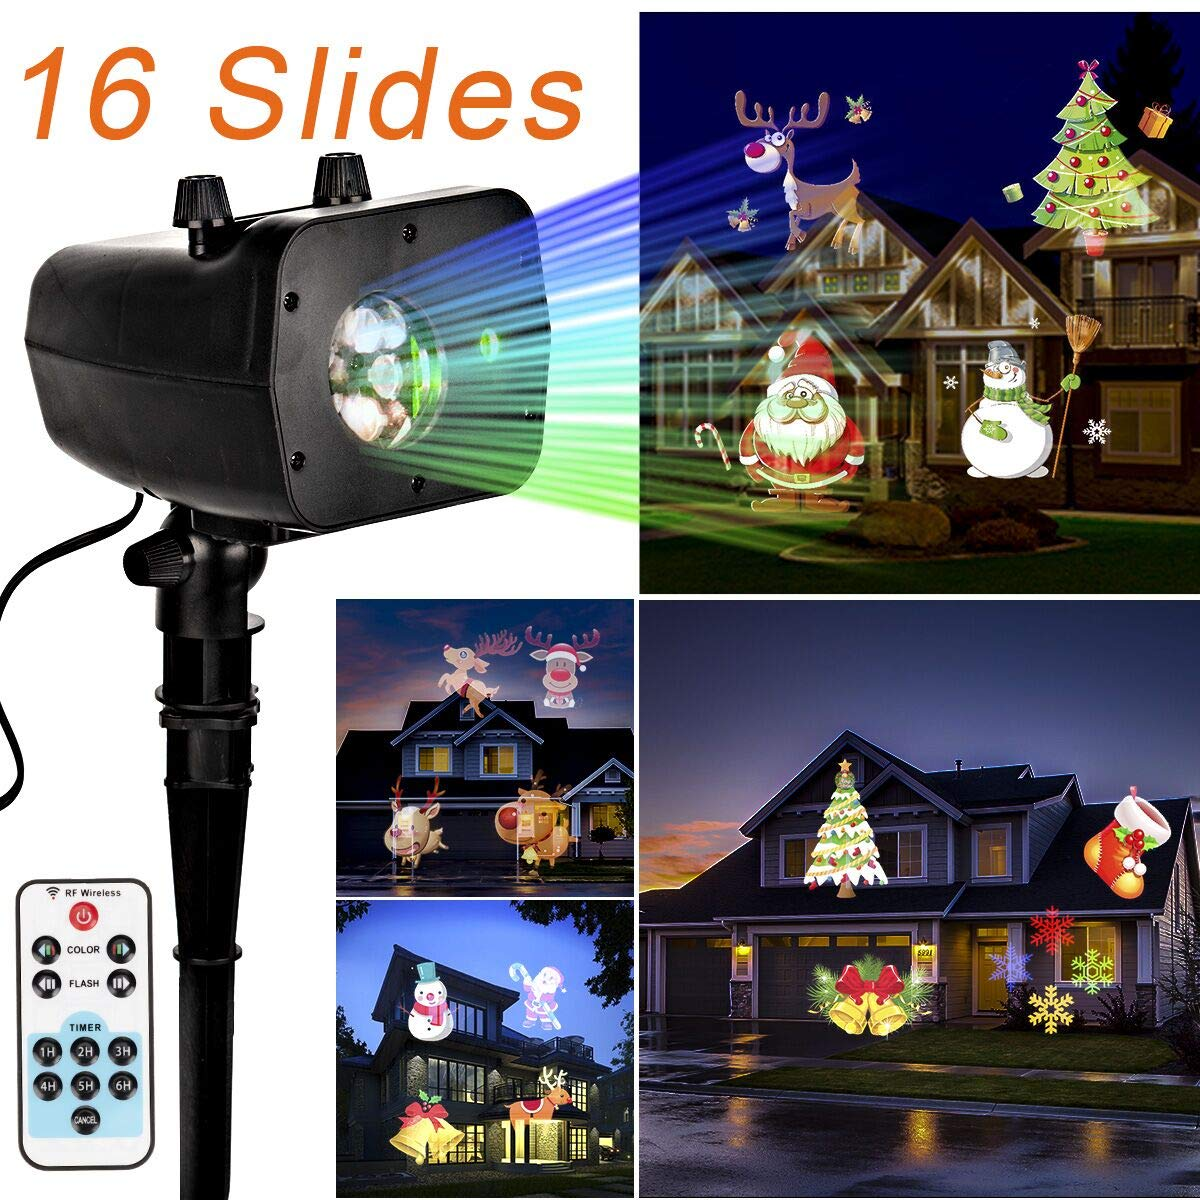 GIGALUMI Christmas Lights Projector - 2018 Newest Version 2-in-1 Waterproof Bright Led Landscape Lights for Halloween, Xmas, Indoor Outdoor Party, Yard Garden Decoration. (16 Slides)